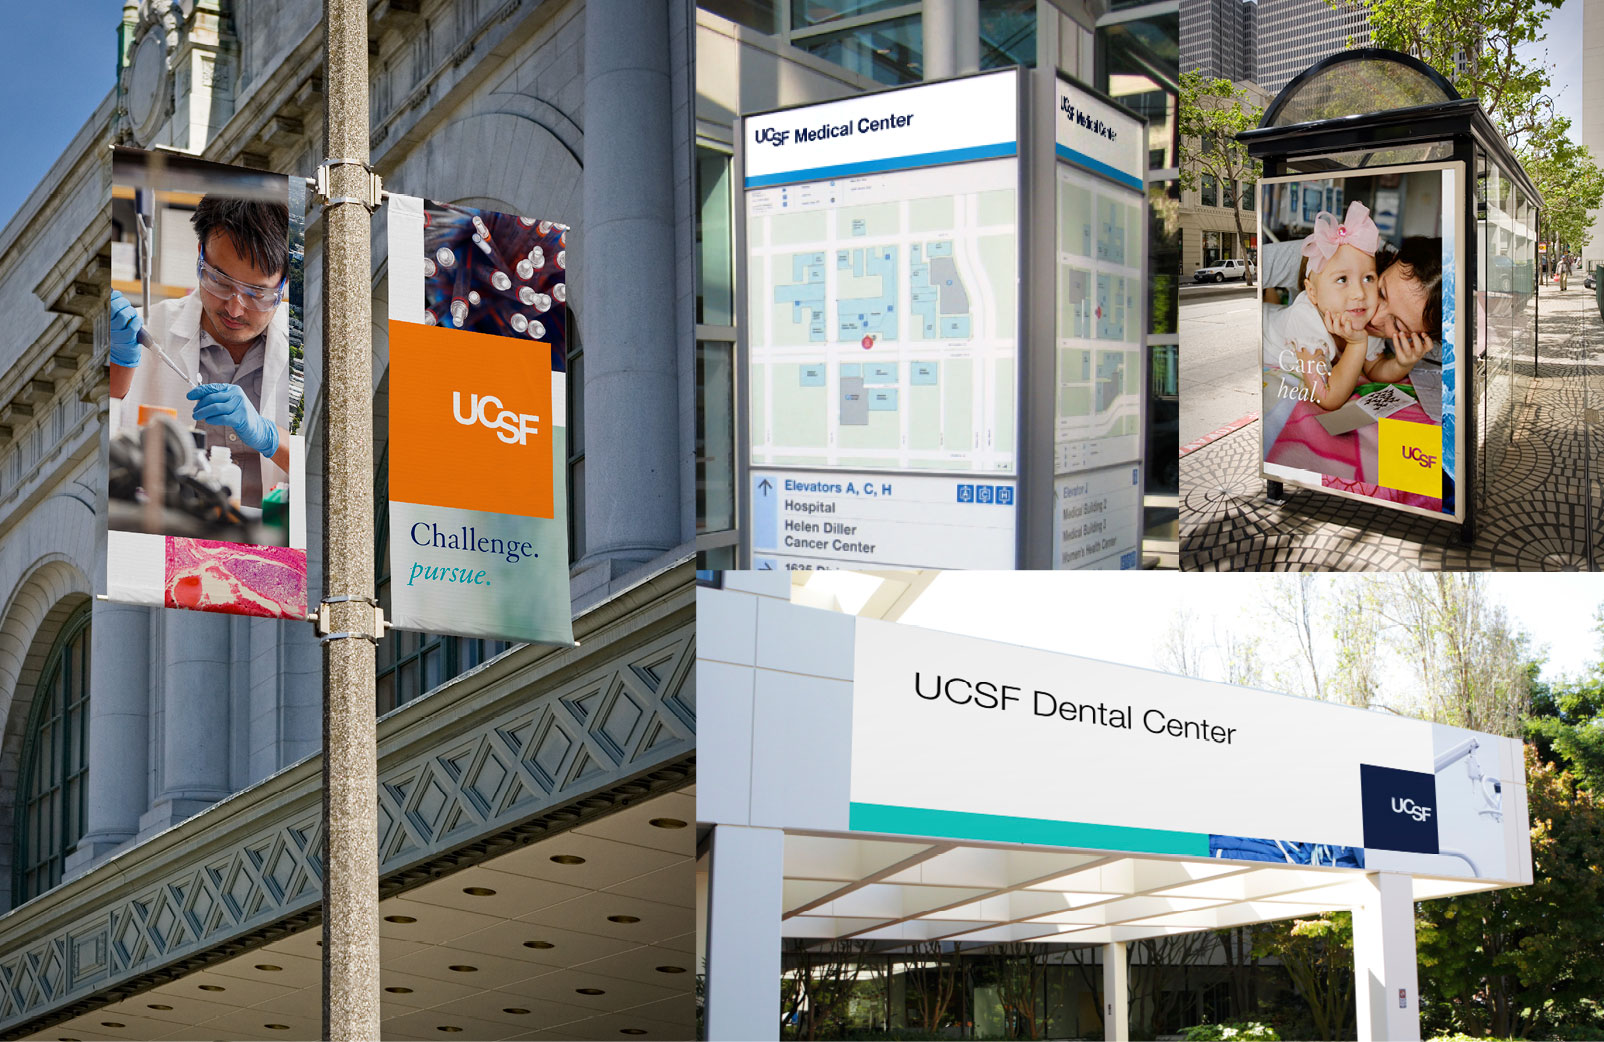 UCSF signage on light poles and bus shelters